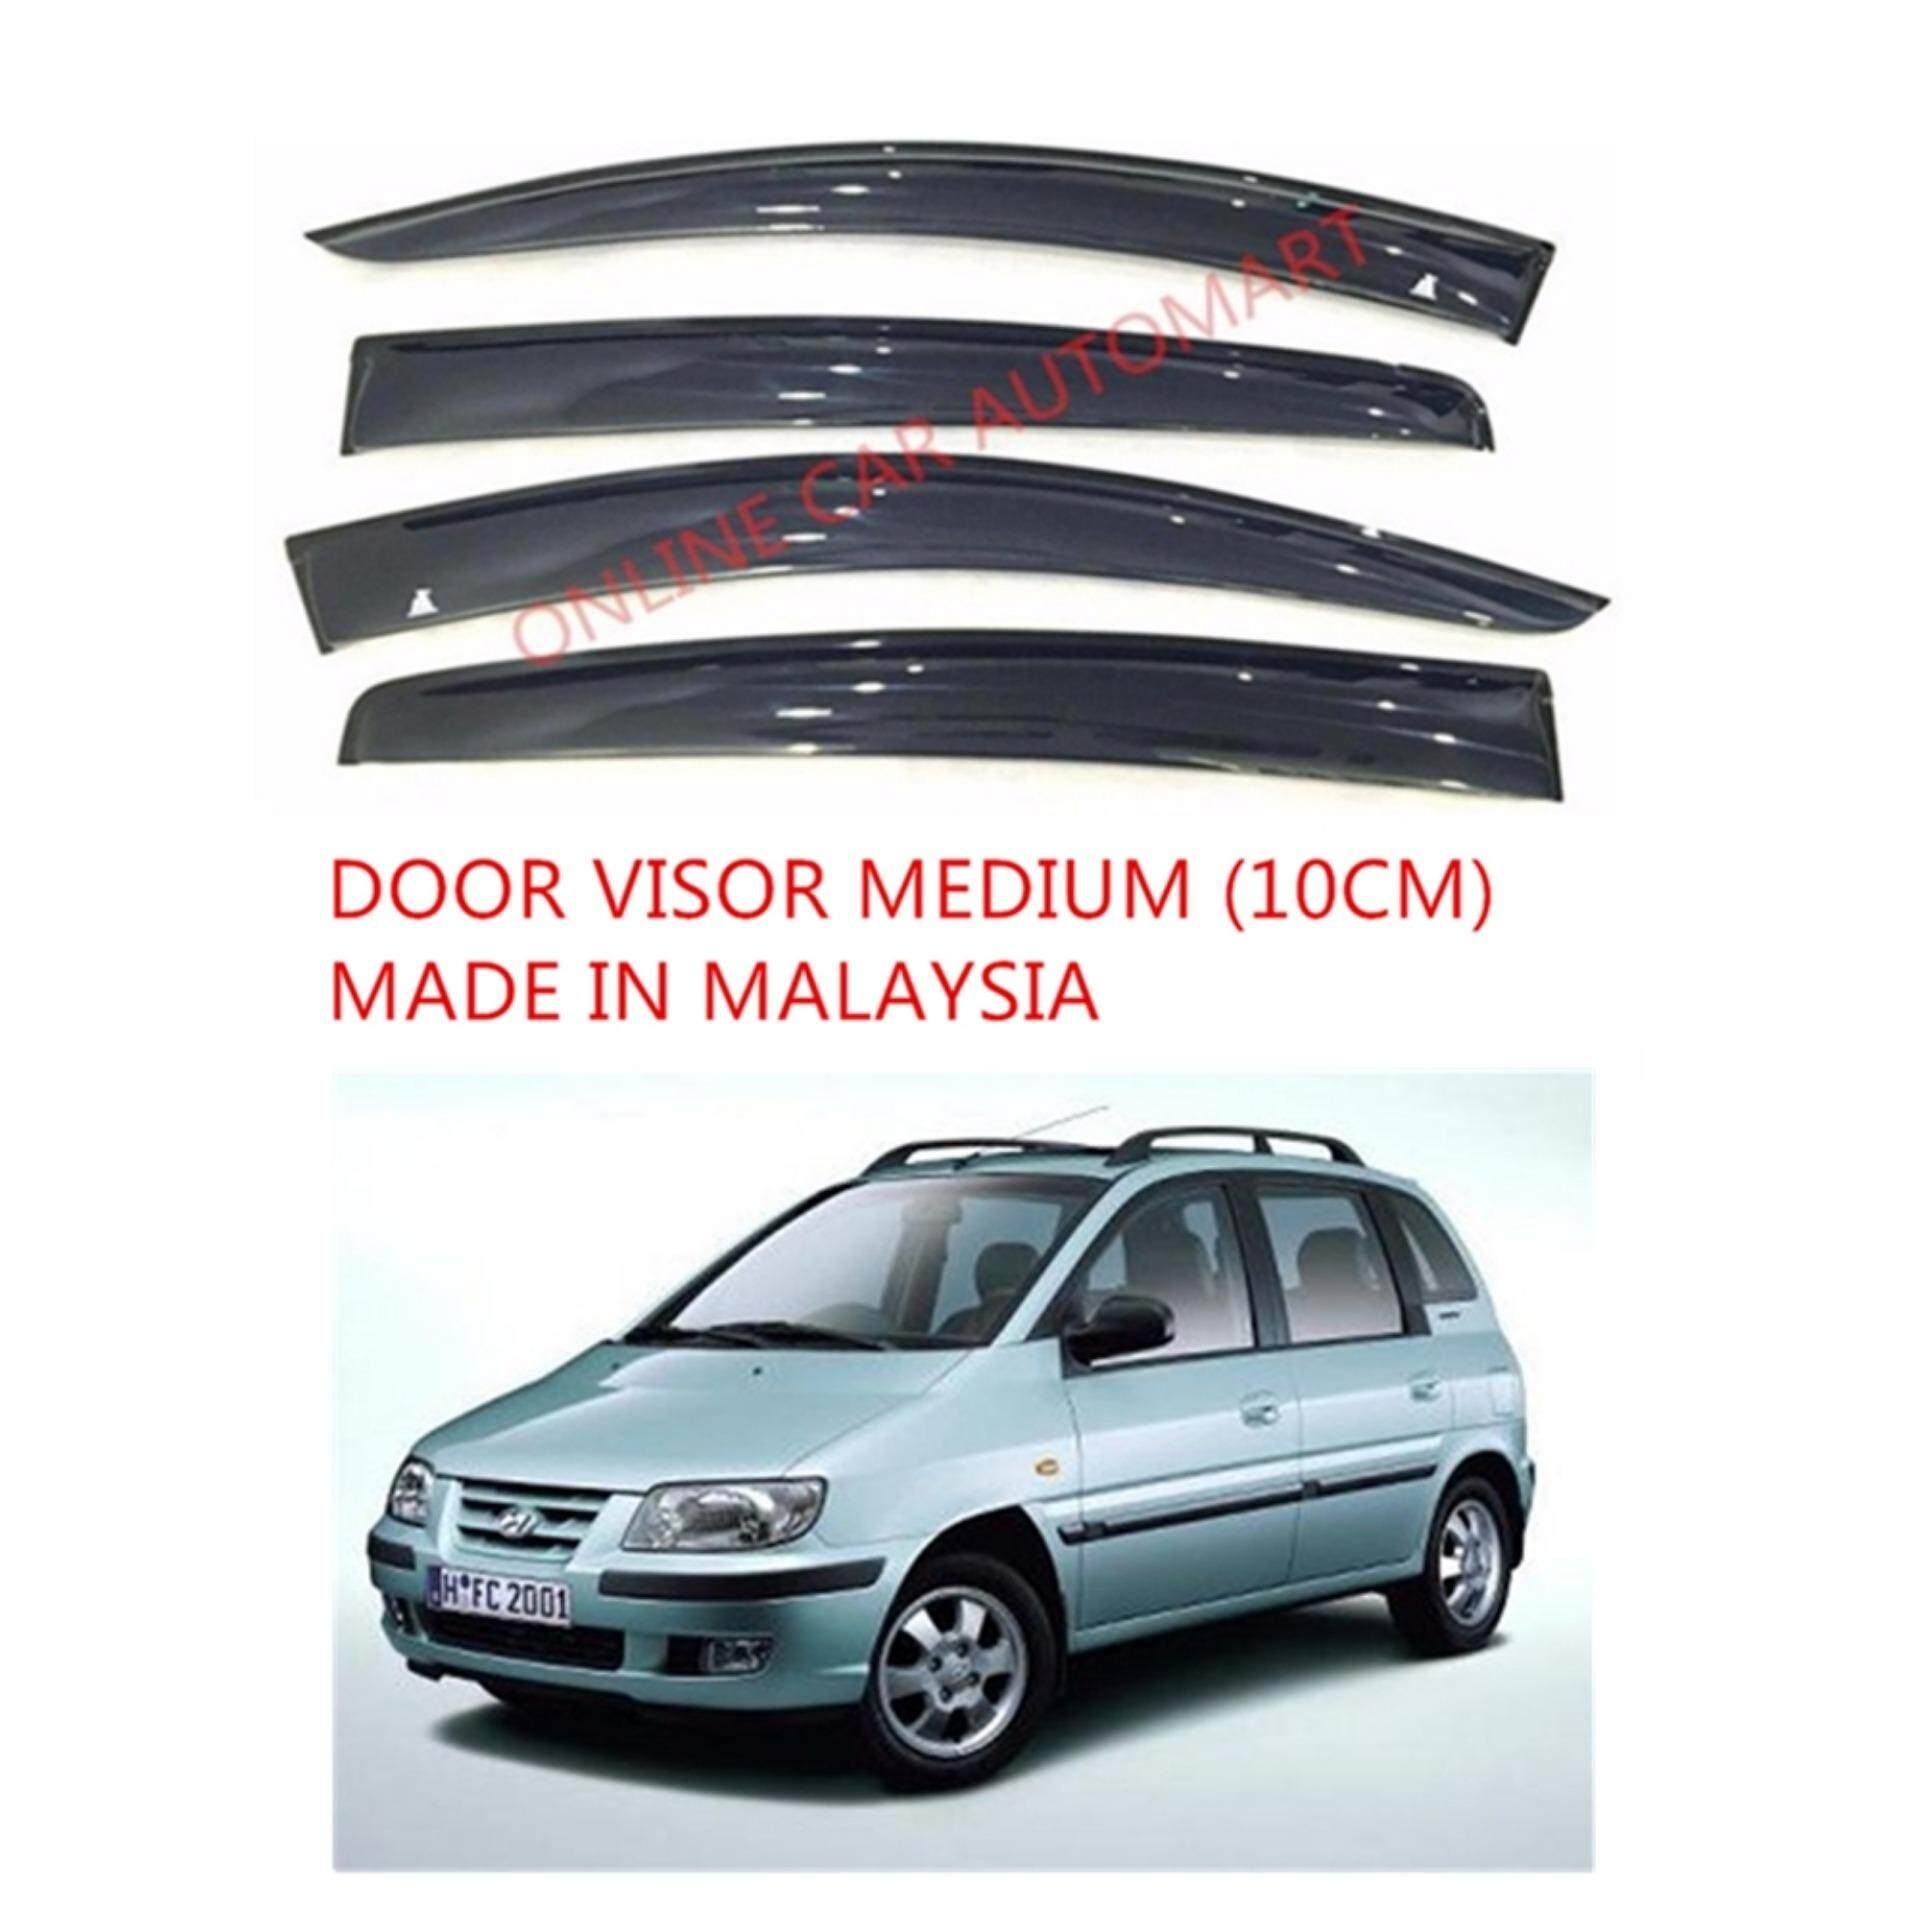 AG Car Window Door Visor Wind Deflector (Made in Malaysia) - Medium 10cm  for Hyundai Matrix